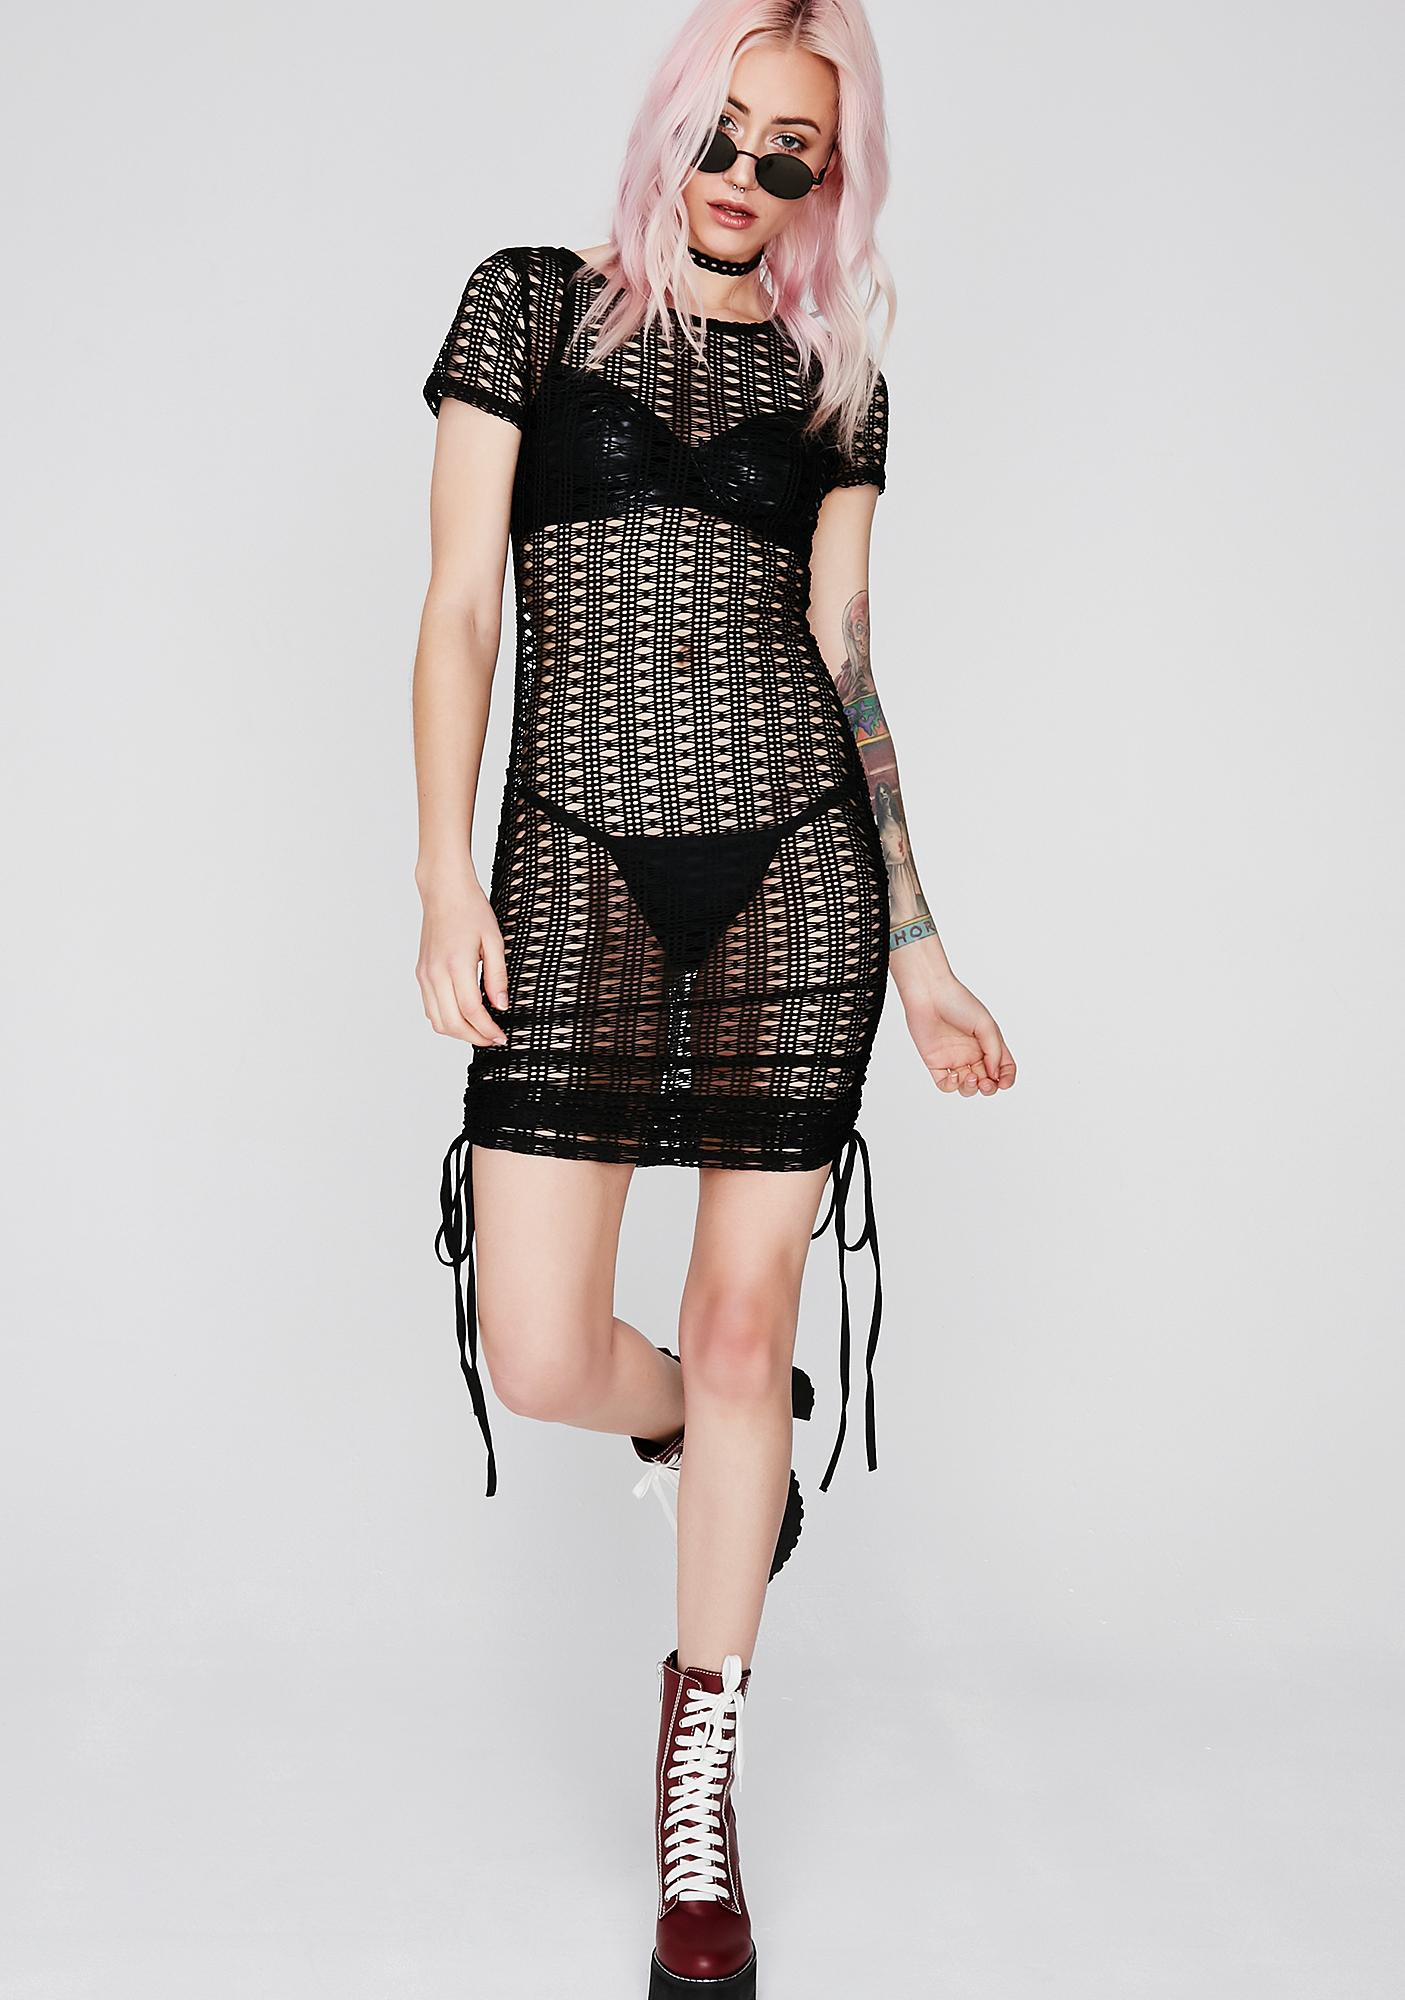 Peep Show Sheer Dress